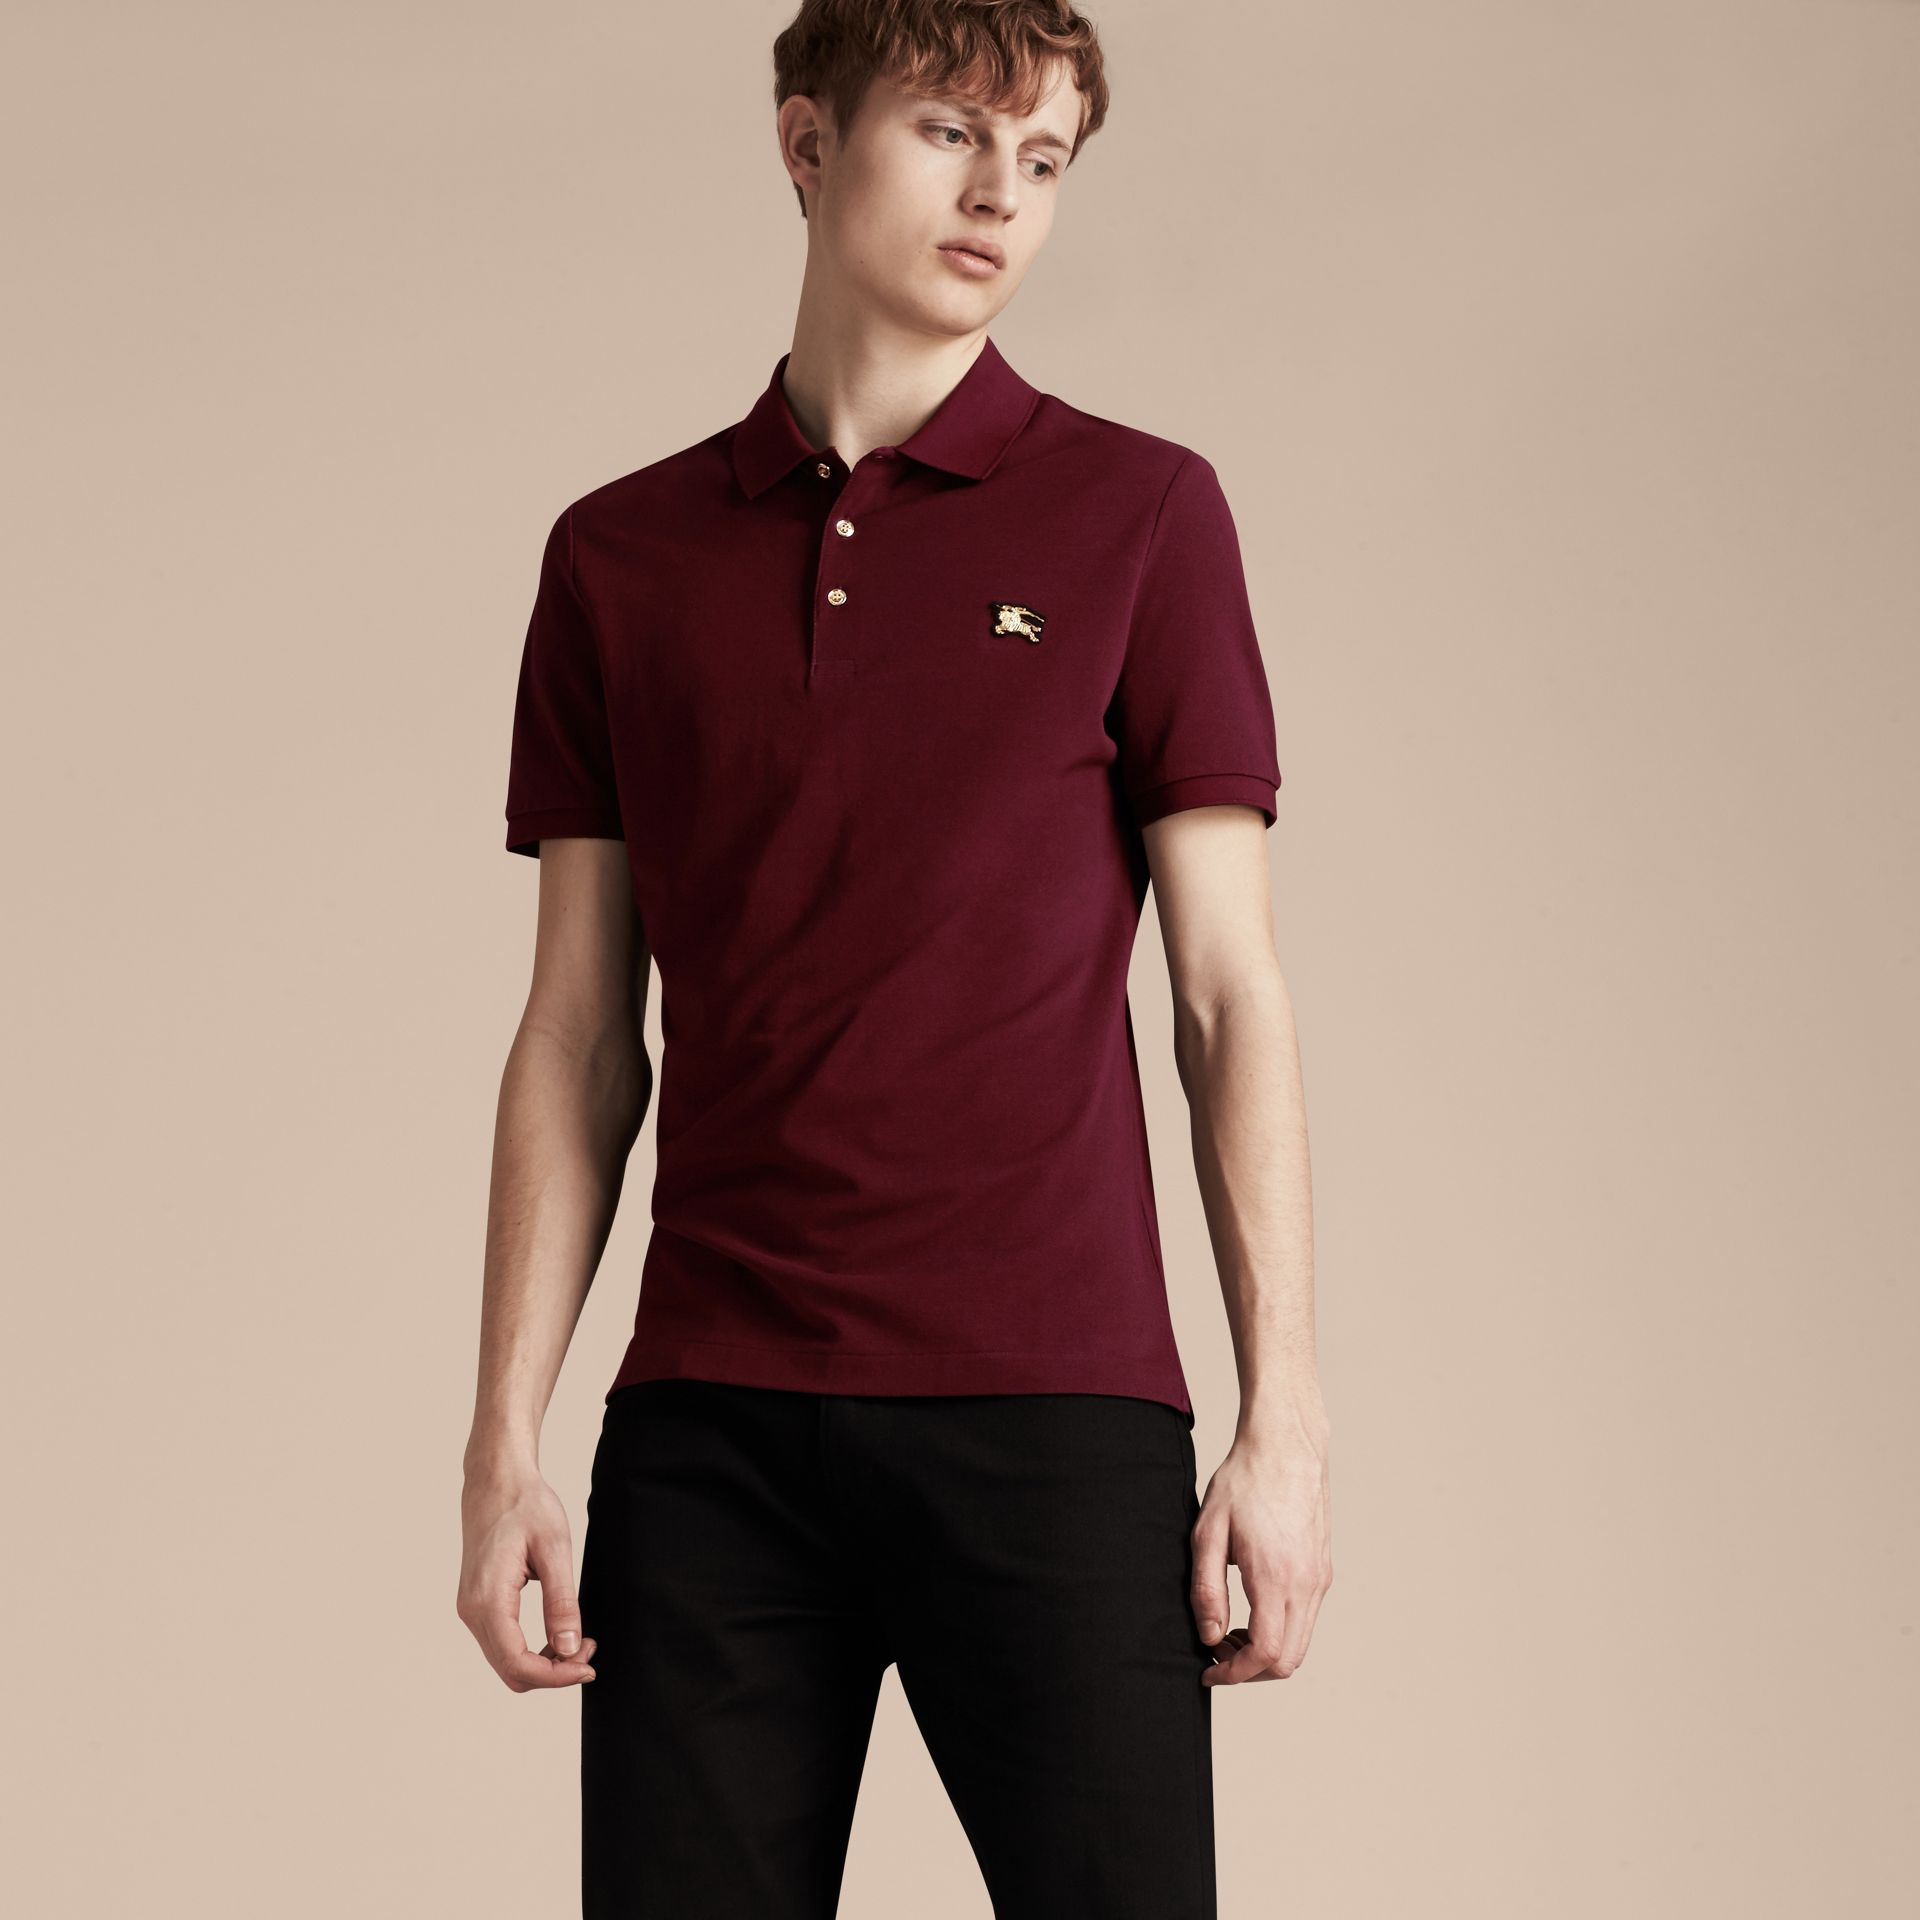 Burgundy red Fitted Mercerised Cotton-Piqué Polo Shirt Burgundy Red - gallery image 6